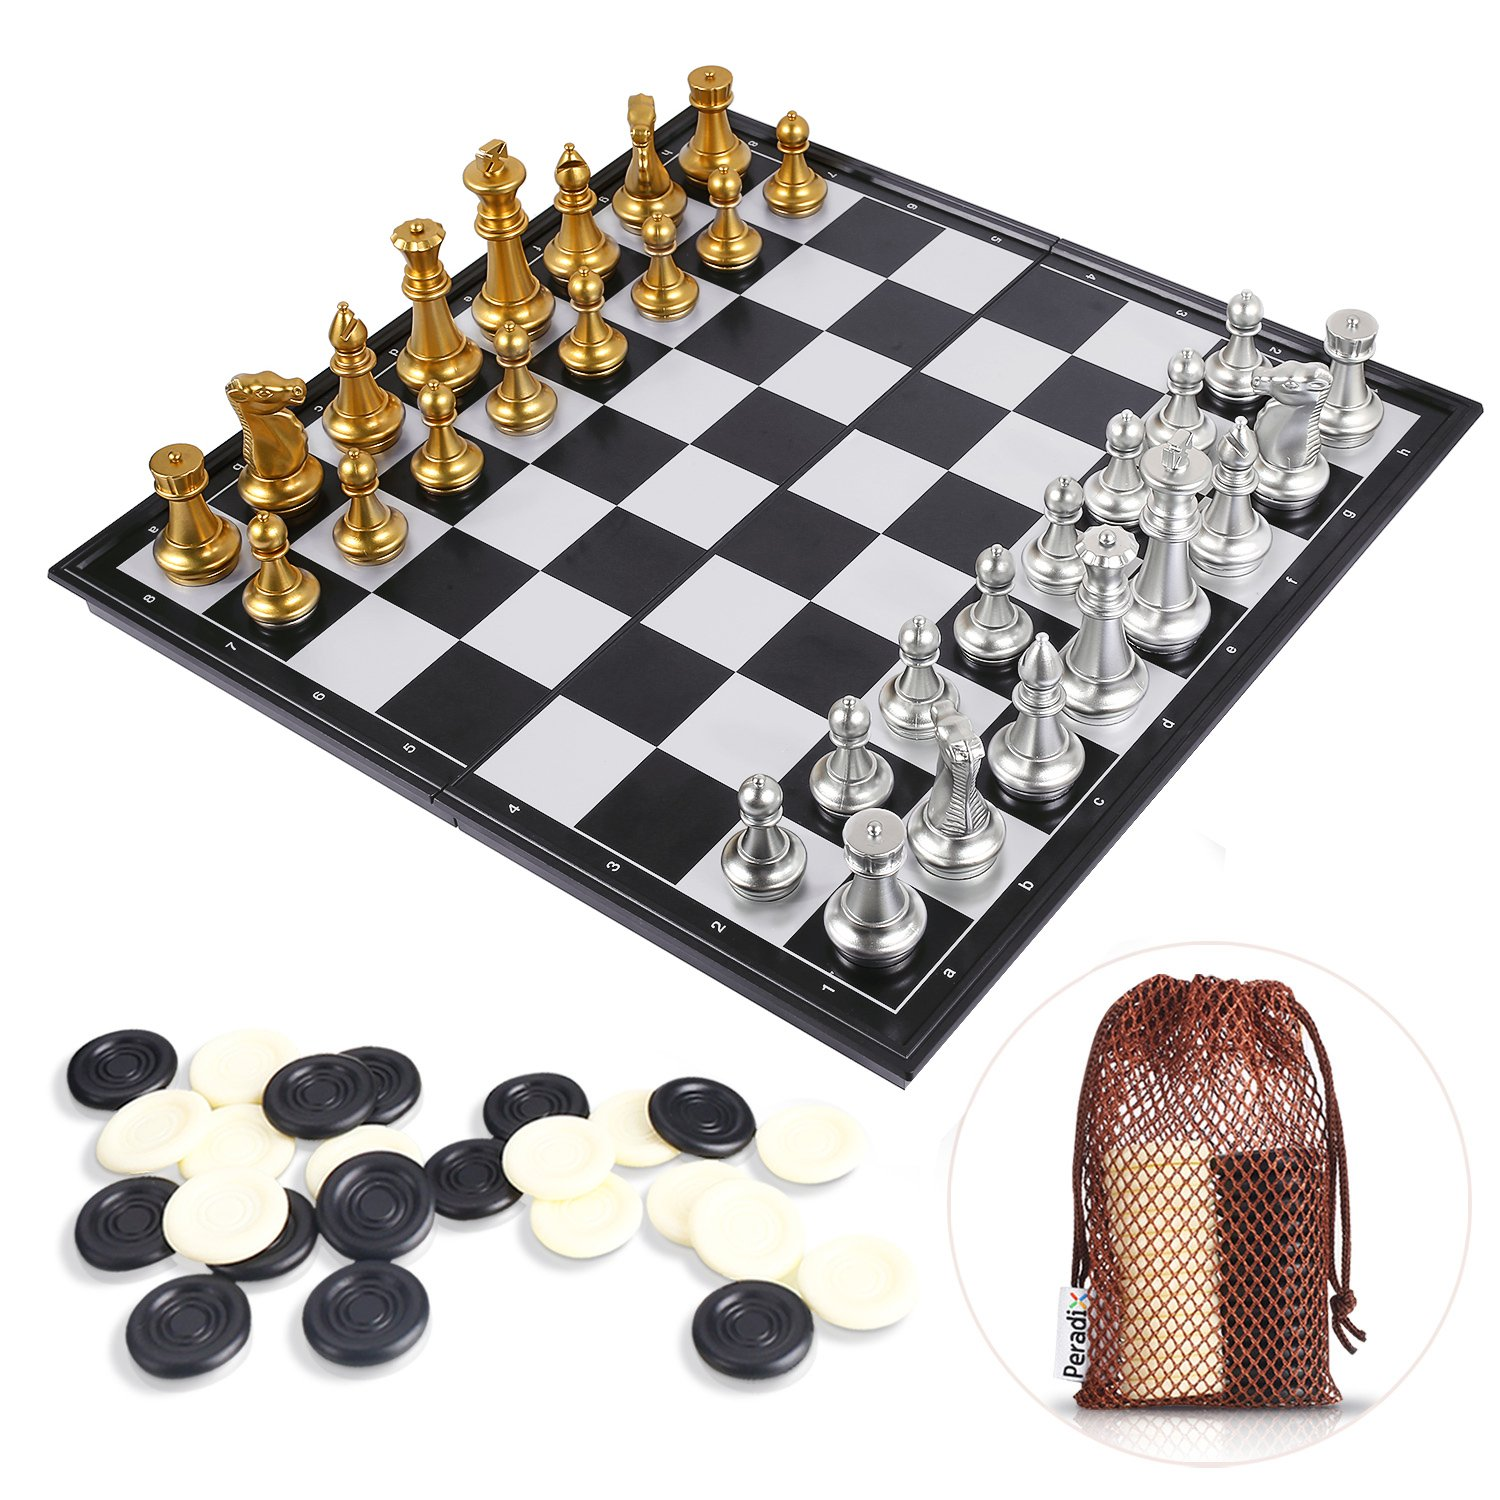 Peradix Magnetic Chess Checkers Set, Portable Golden & Silver Folding Chess Board Game, 14'' Perfect Educational Learning Toys for Chess Club, Travel Sized Storage Bags for Kids and Adults